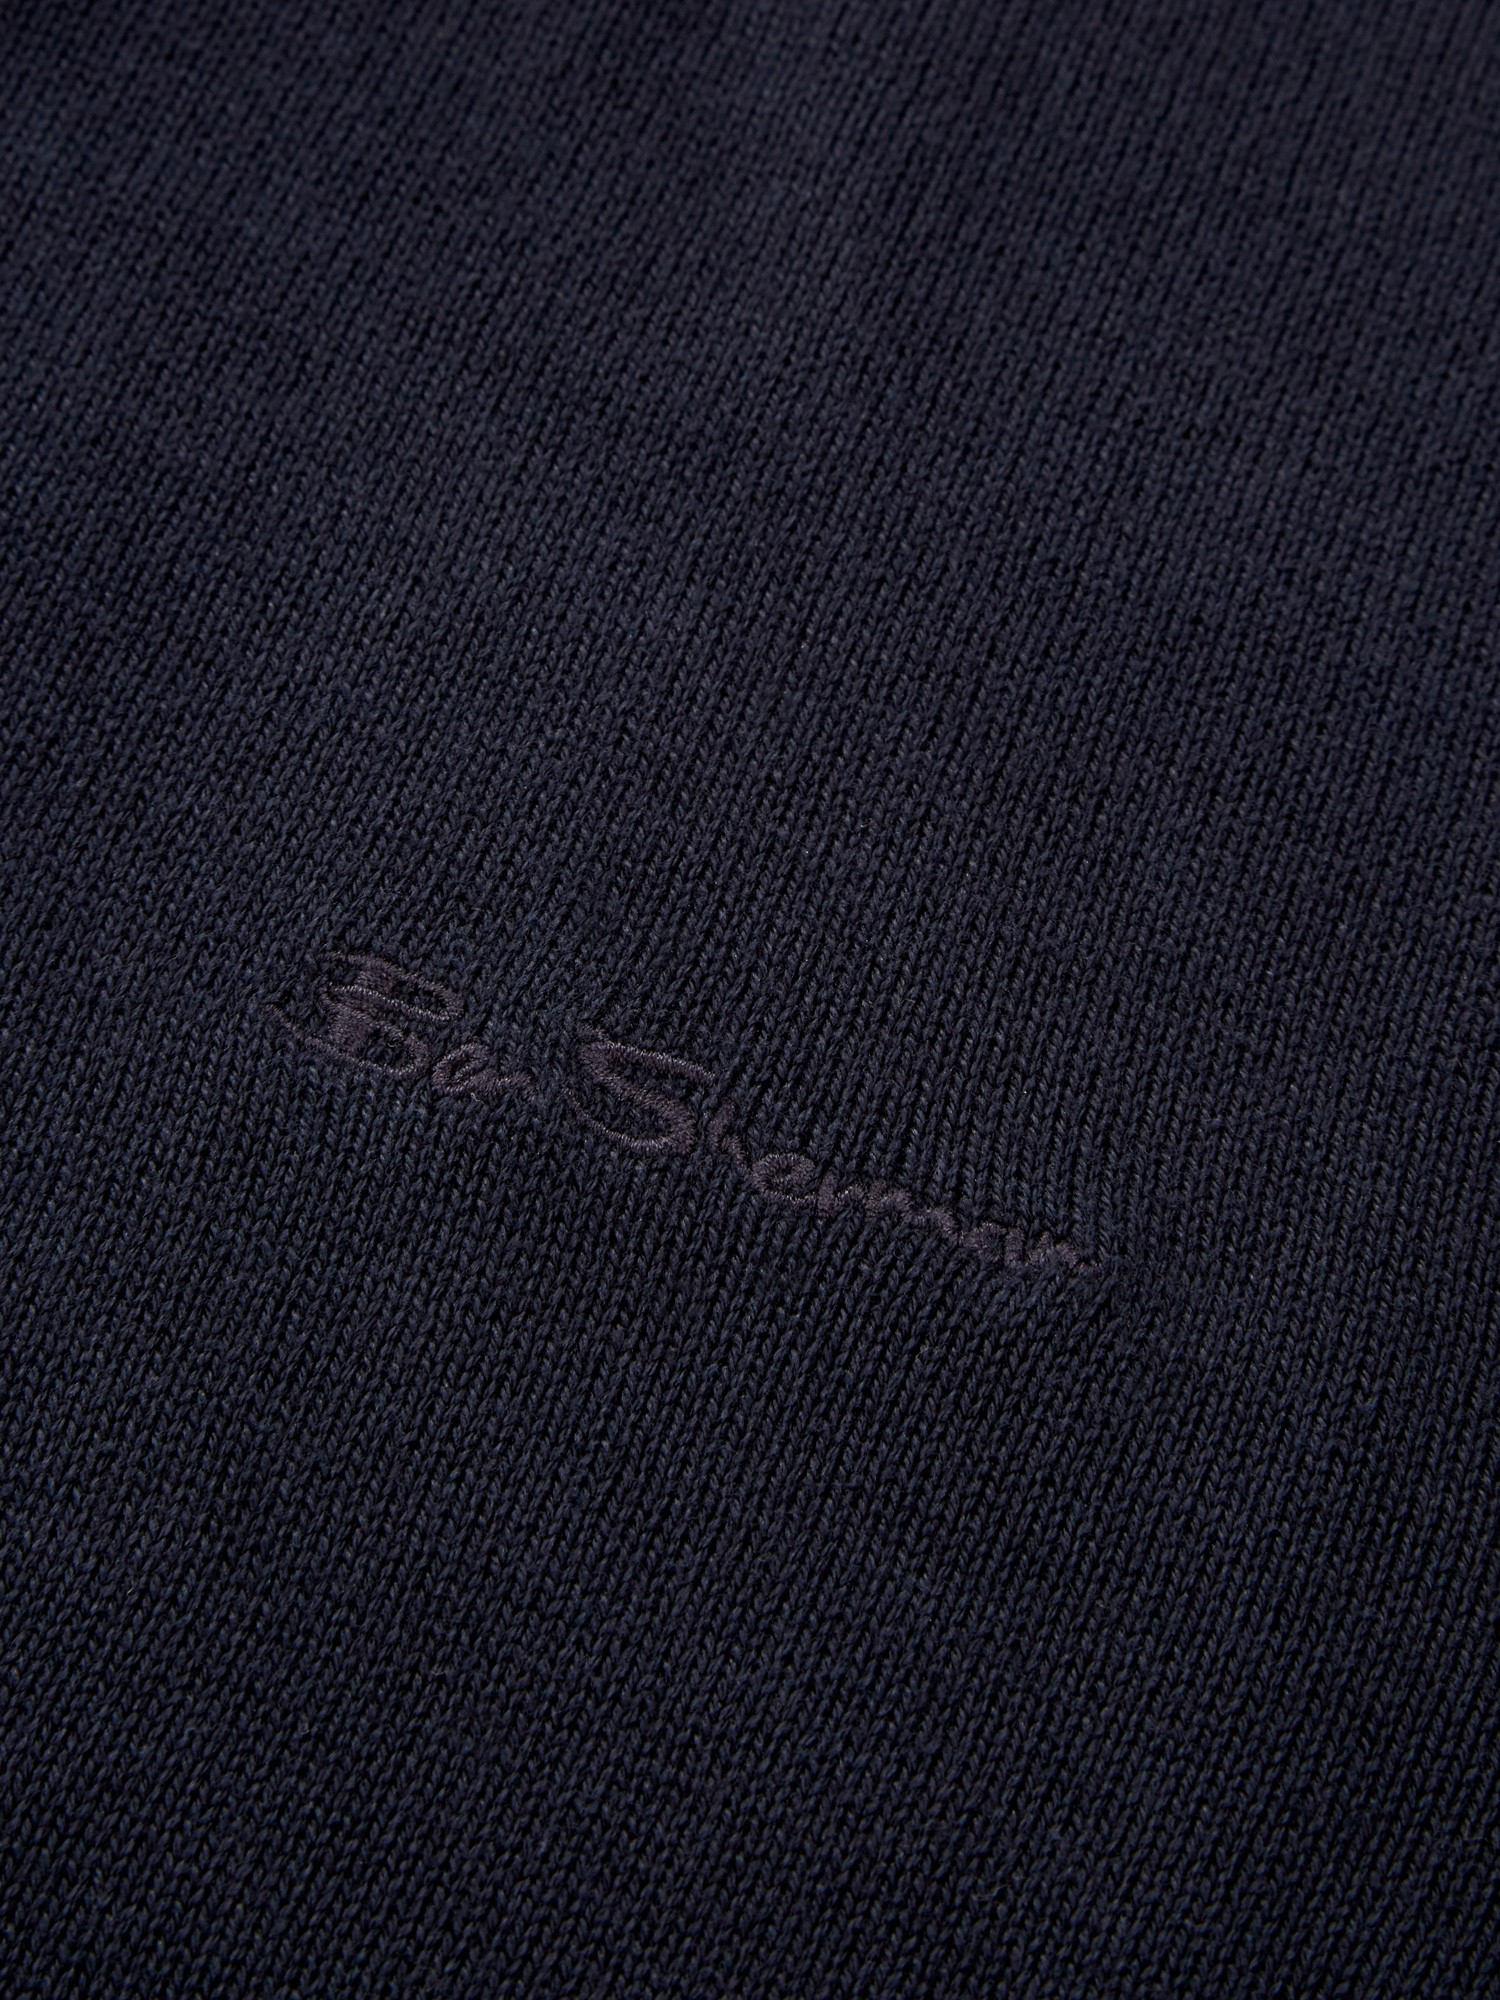 Signature Knitted Crew Neck Jumper